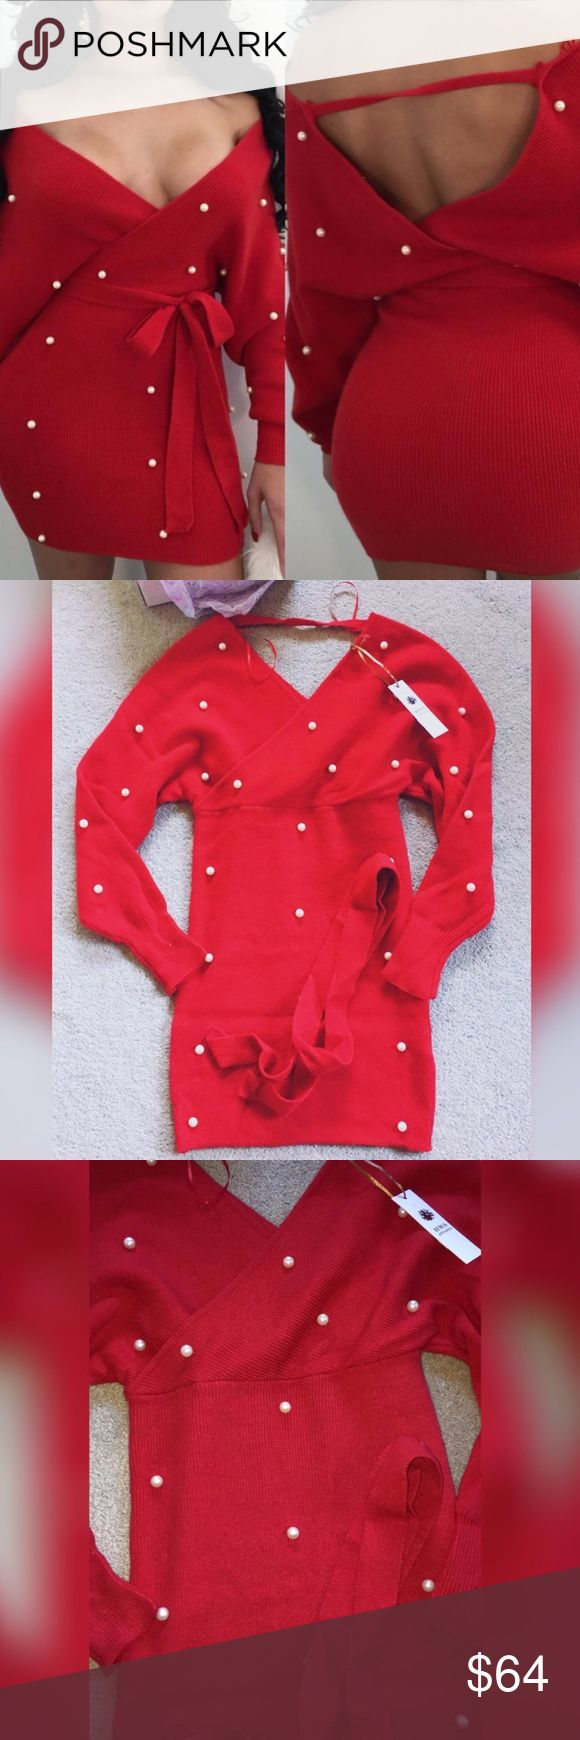 • Boutique Red Pearl Sweater Mini Dress ♡ NWT!  ♡ From an online Boutique! ♡ Material: 70% Cotton, 30% Rayon!   💲 Prices are FIRM here on Posh! All offers will kindly be declined!   🗣 Ask all questions below! 🚫 NO trades/🅿️🅿️/drama/lowest/offers/holds/emails! 🏷 Similar Tags: Nasty Gal, Missguided, House Of CB, Fashion Nova, Windsor, Hot Miami Styles, Valentine's Day, Express, AKIRA, AMI Clubwear, Meshki, ASOS, Urban Outfitters.   XO - AW - ☠️ Dresses Long Sleeve